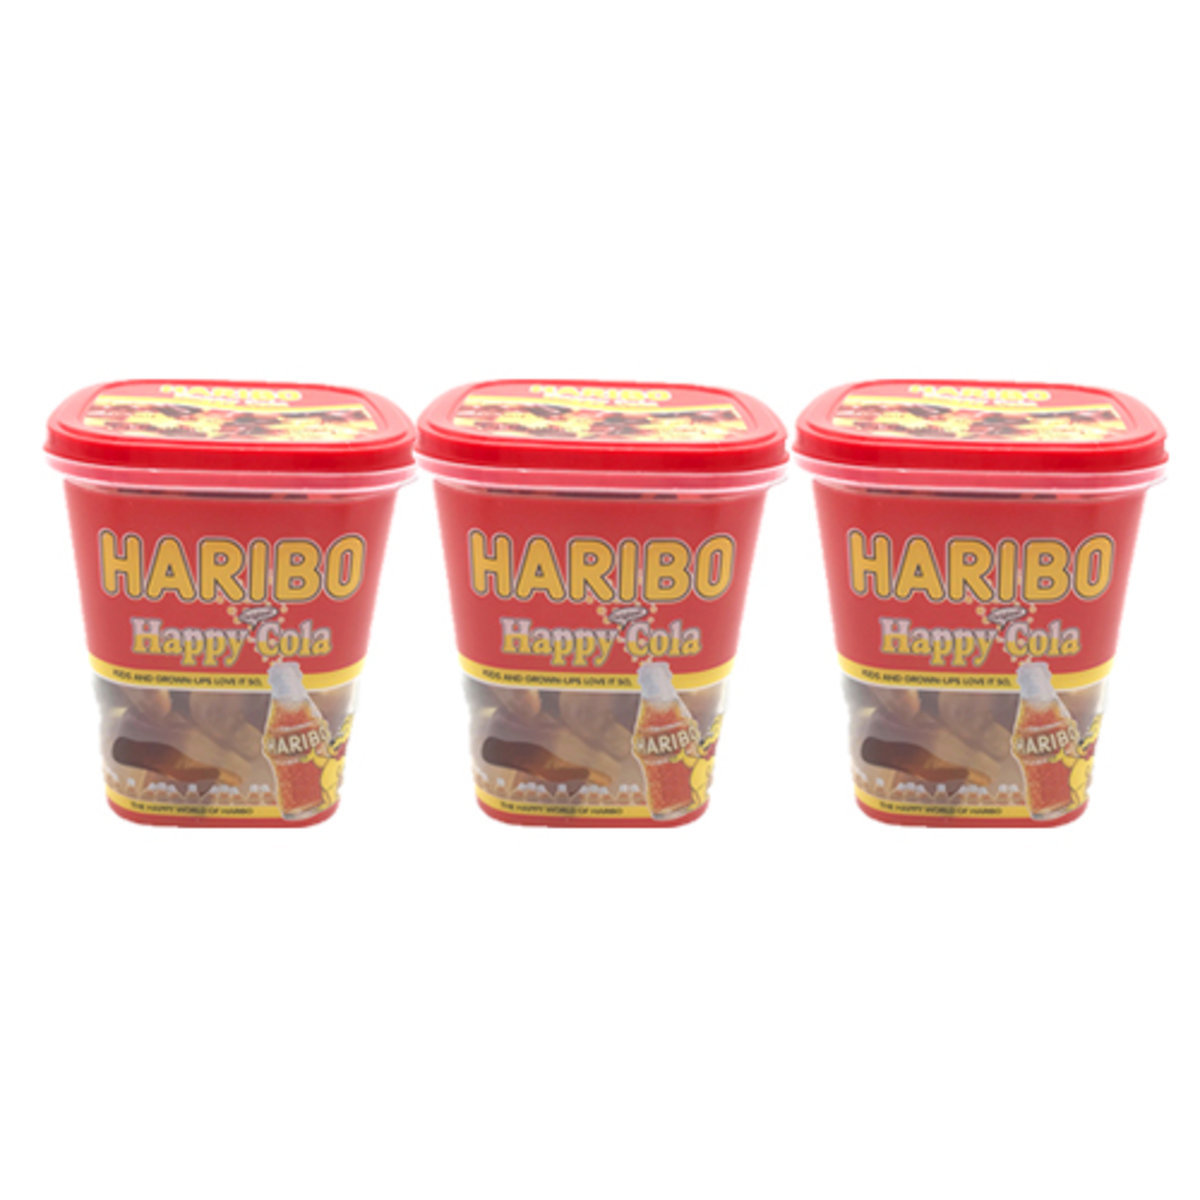 haribo happy cola cola flavour jelly candy box 175g x 3boxes